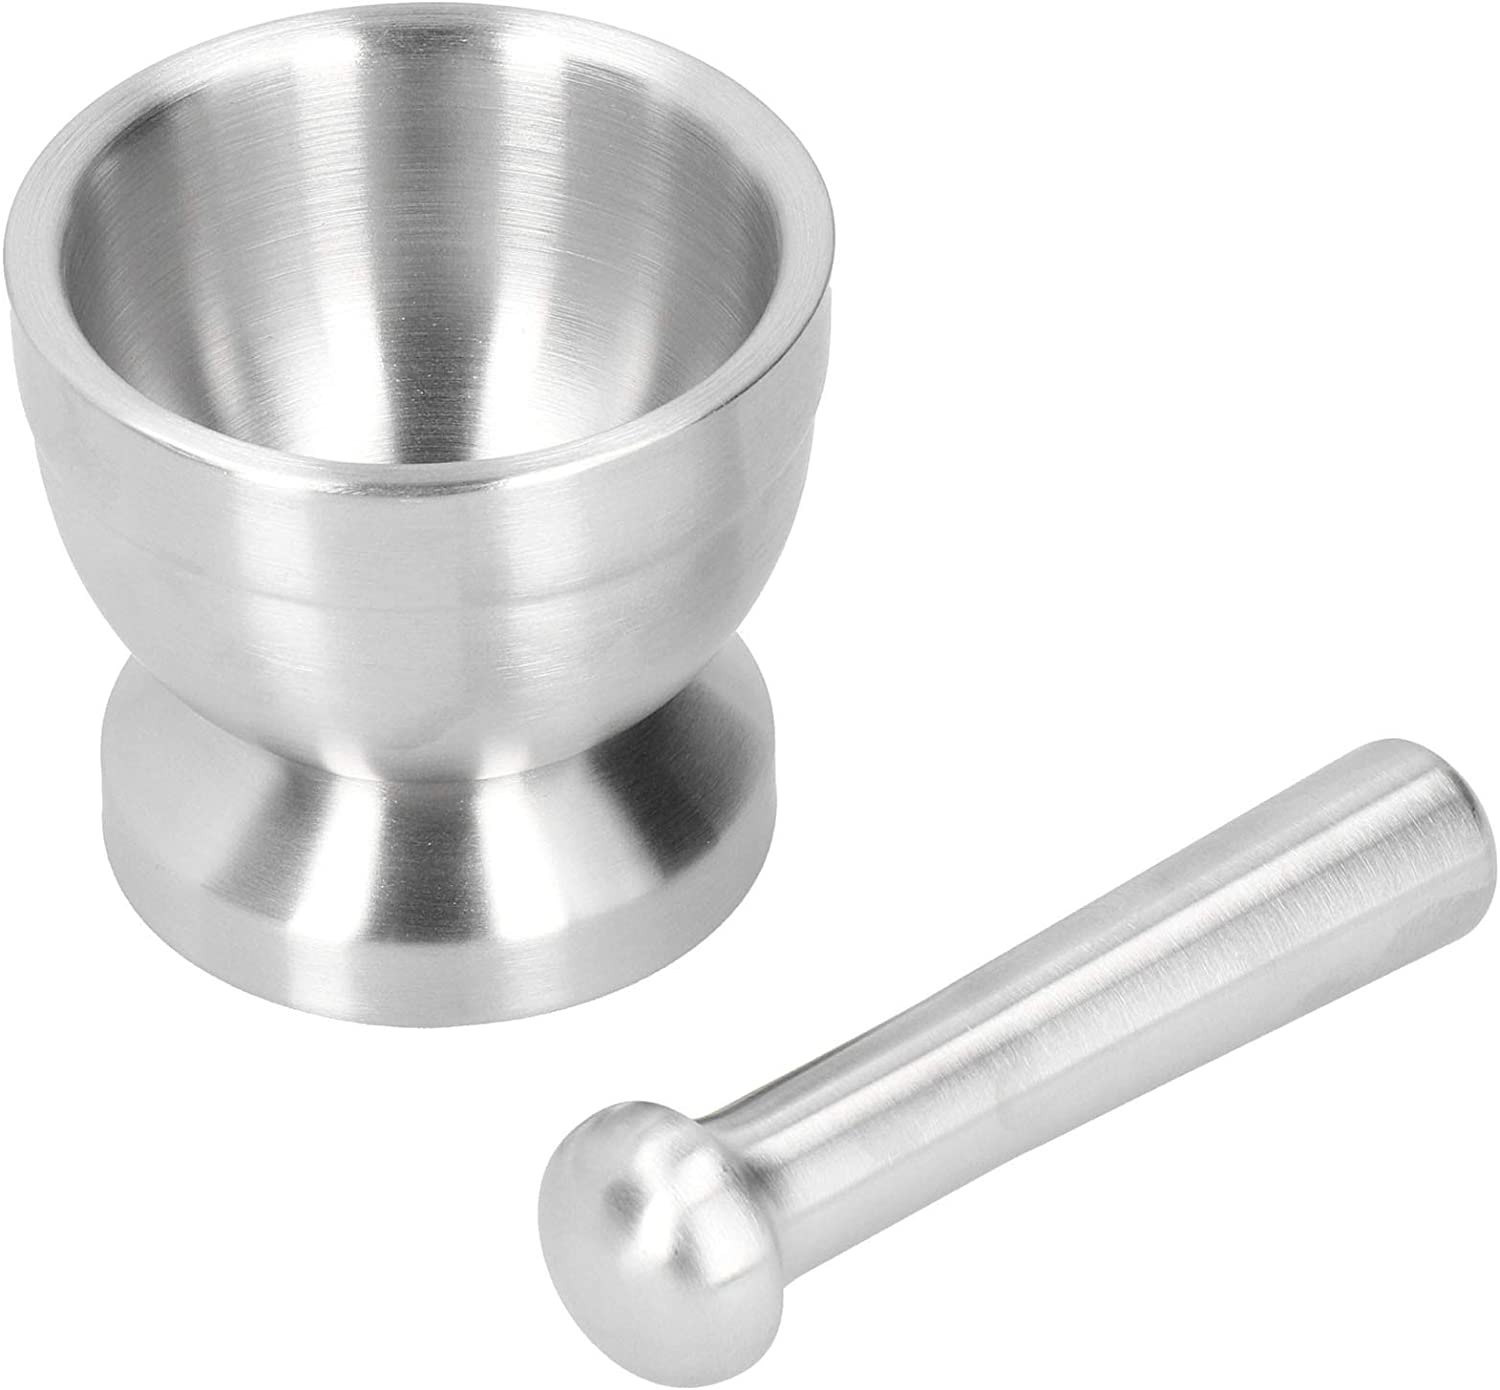 Limited time sale Garlic Grinder Mortar El Paso Mall and Pestle Spice Steel Stainless Set Grin